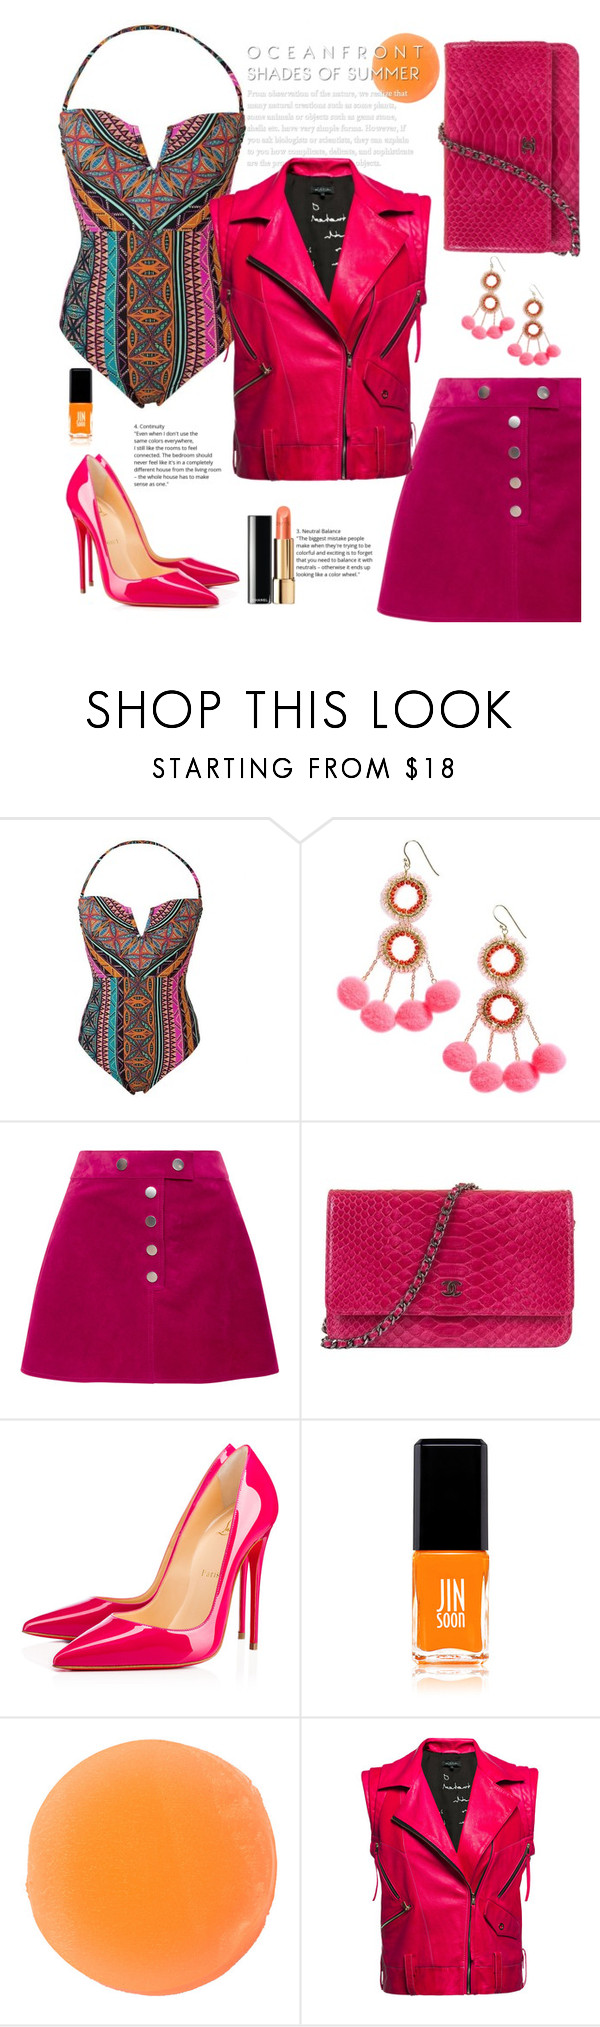 """""""Summer's Song"""" by felicitysparks ❤ liked on Polyvore featuring Hobie, Panacea, Courrèges, Chanel, Christian Louboutin, JINsoon, Zelens and Leka"""